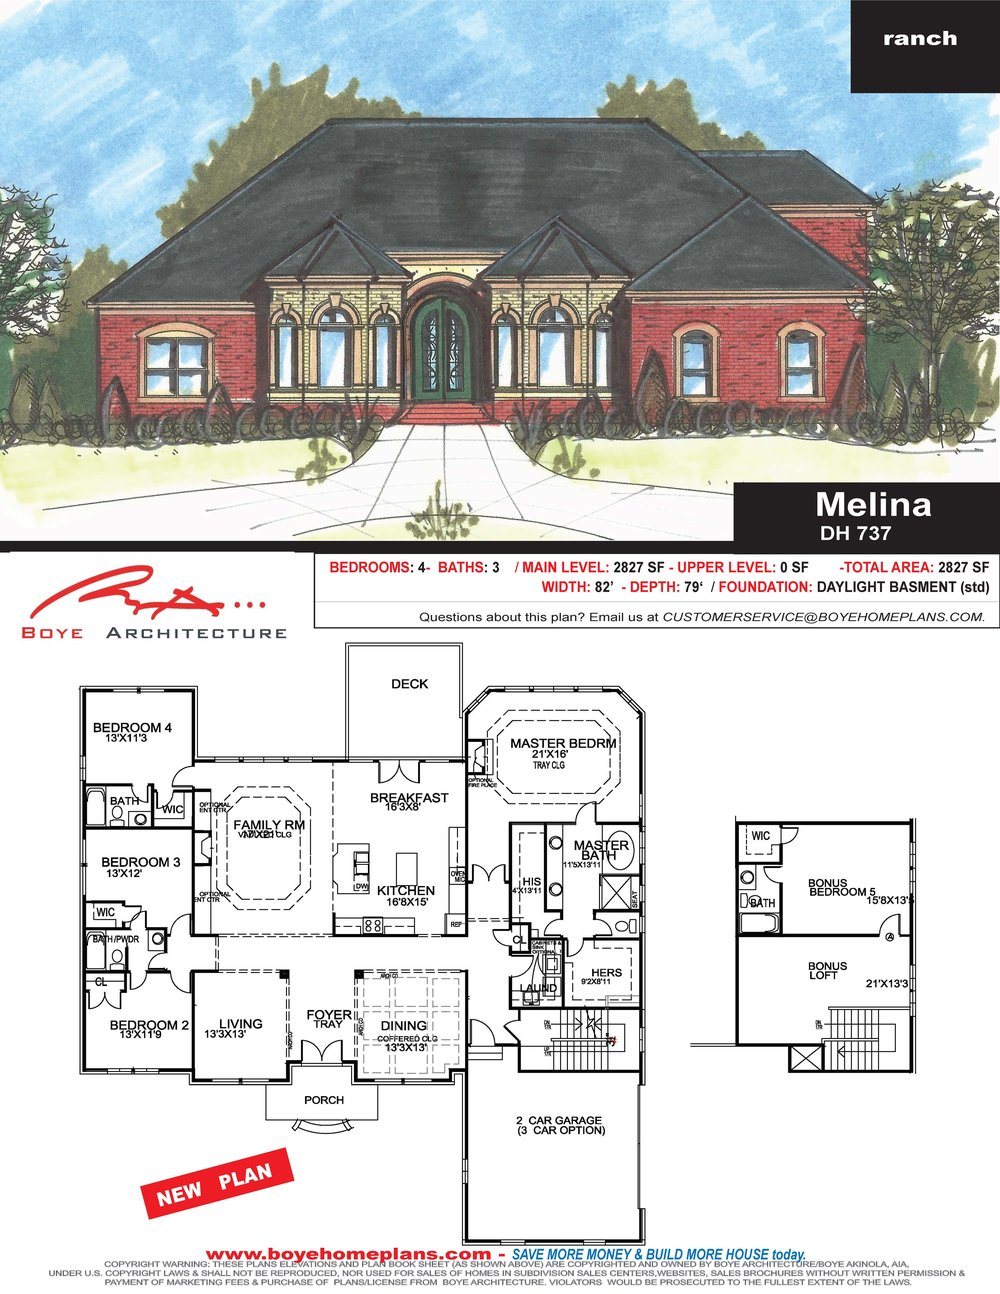 MELINA PLAN PAGE-DH 737-081917.jpg